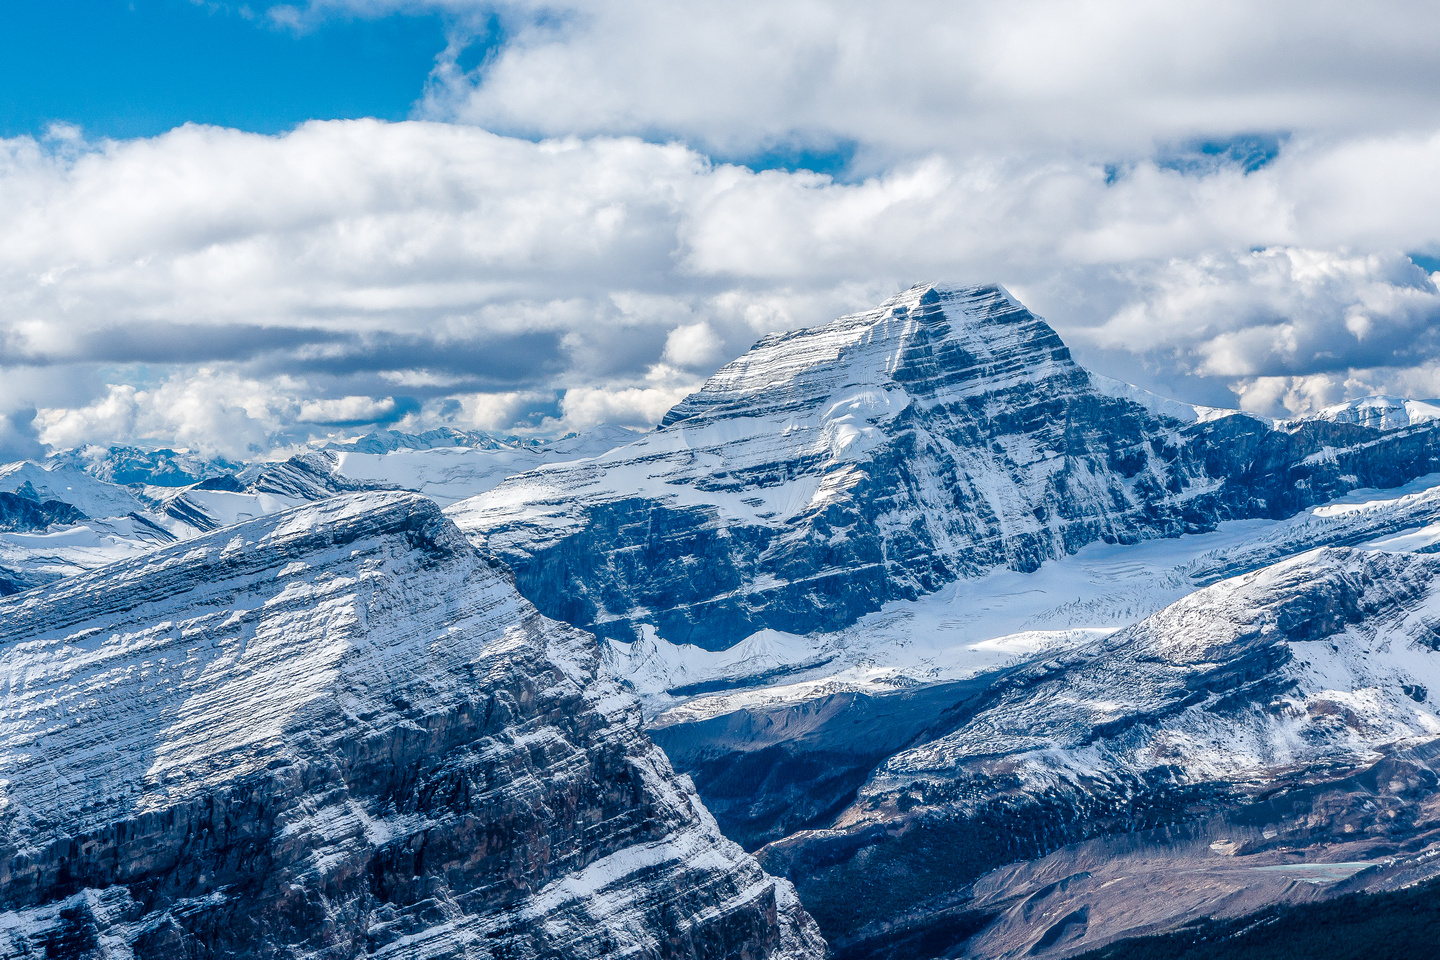 Whitehorn Mountain is an impressive 11,000er in the Robson area.